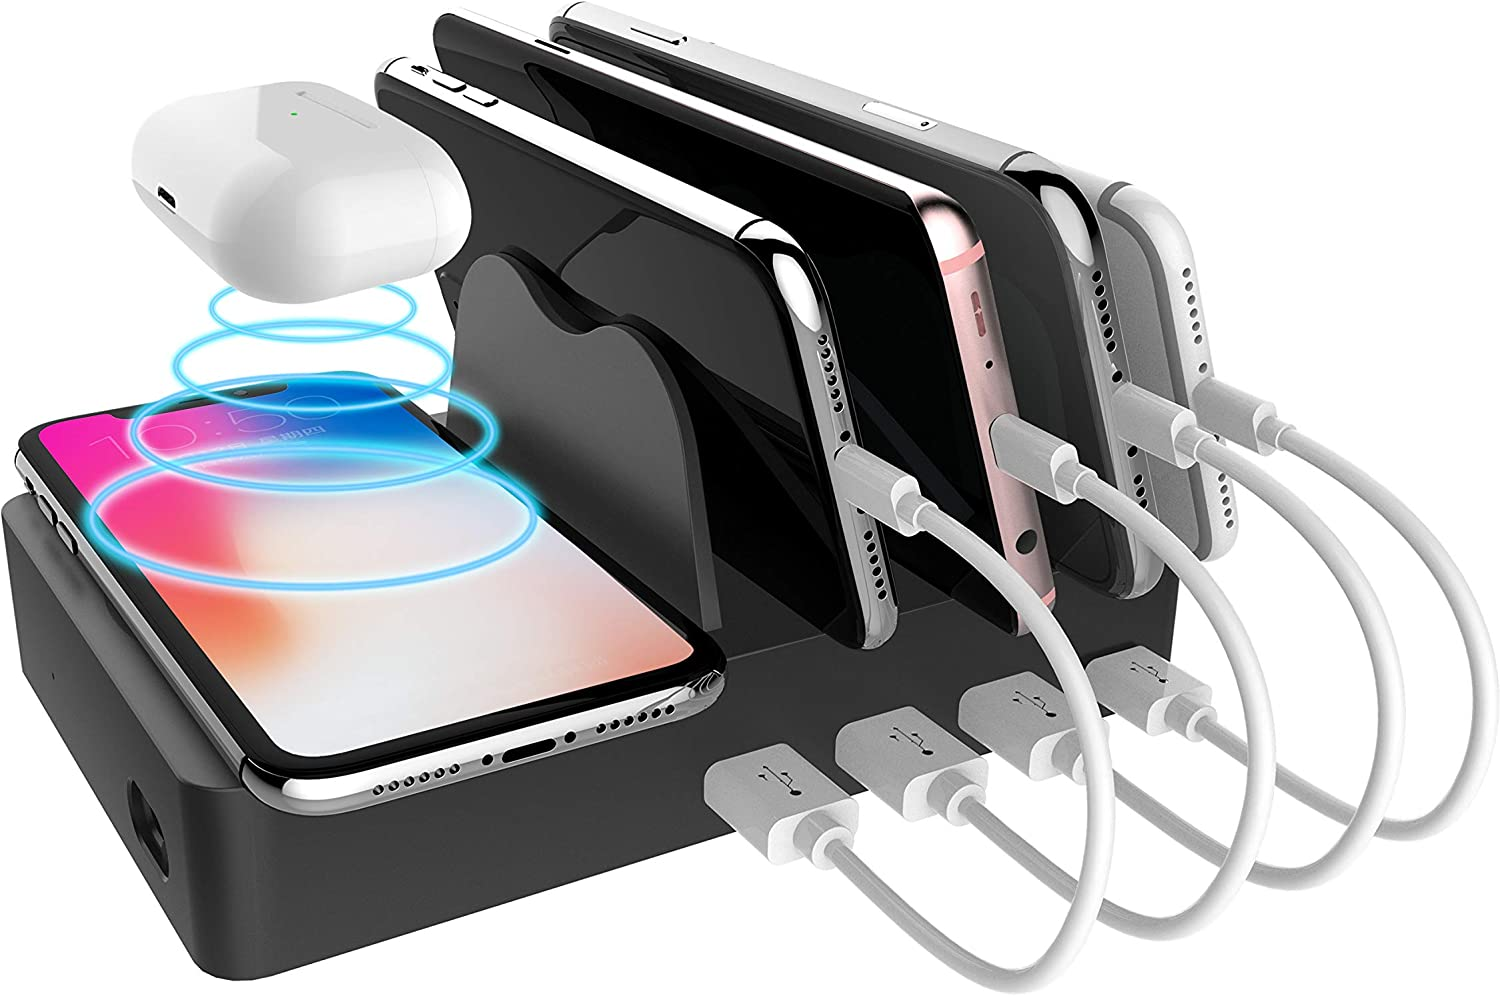 Fast Wireless Charger Dock for iPhone Airpods PD 3.0 Charger for iPhone iPad by USB-C Port Charging Station Organizer for Multiple Devices